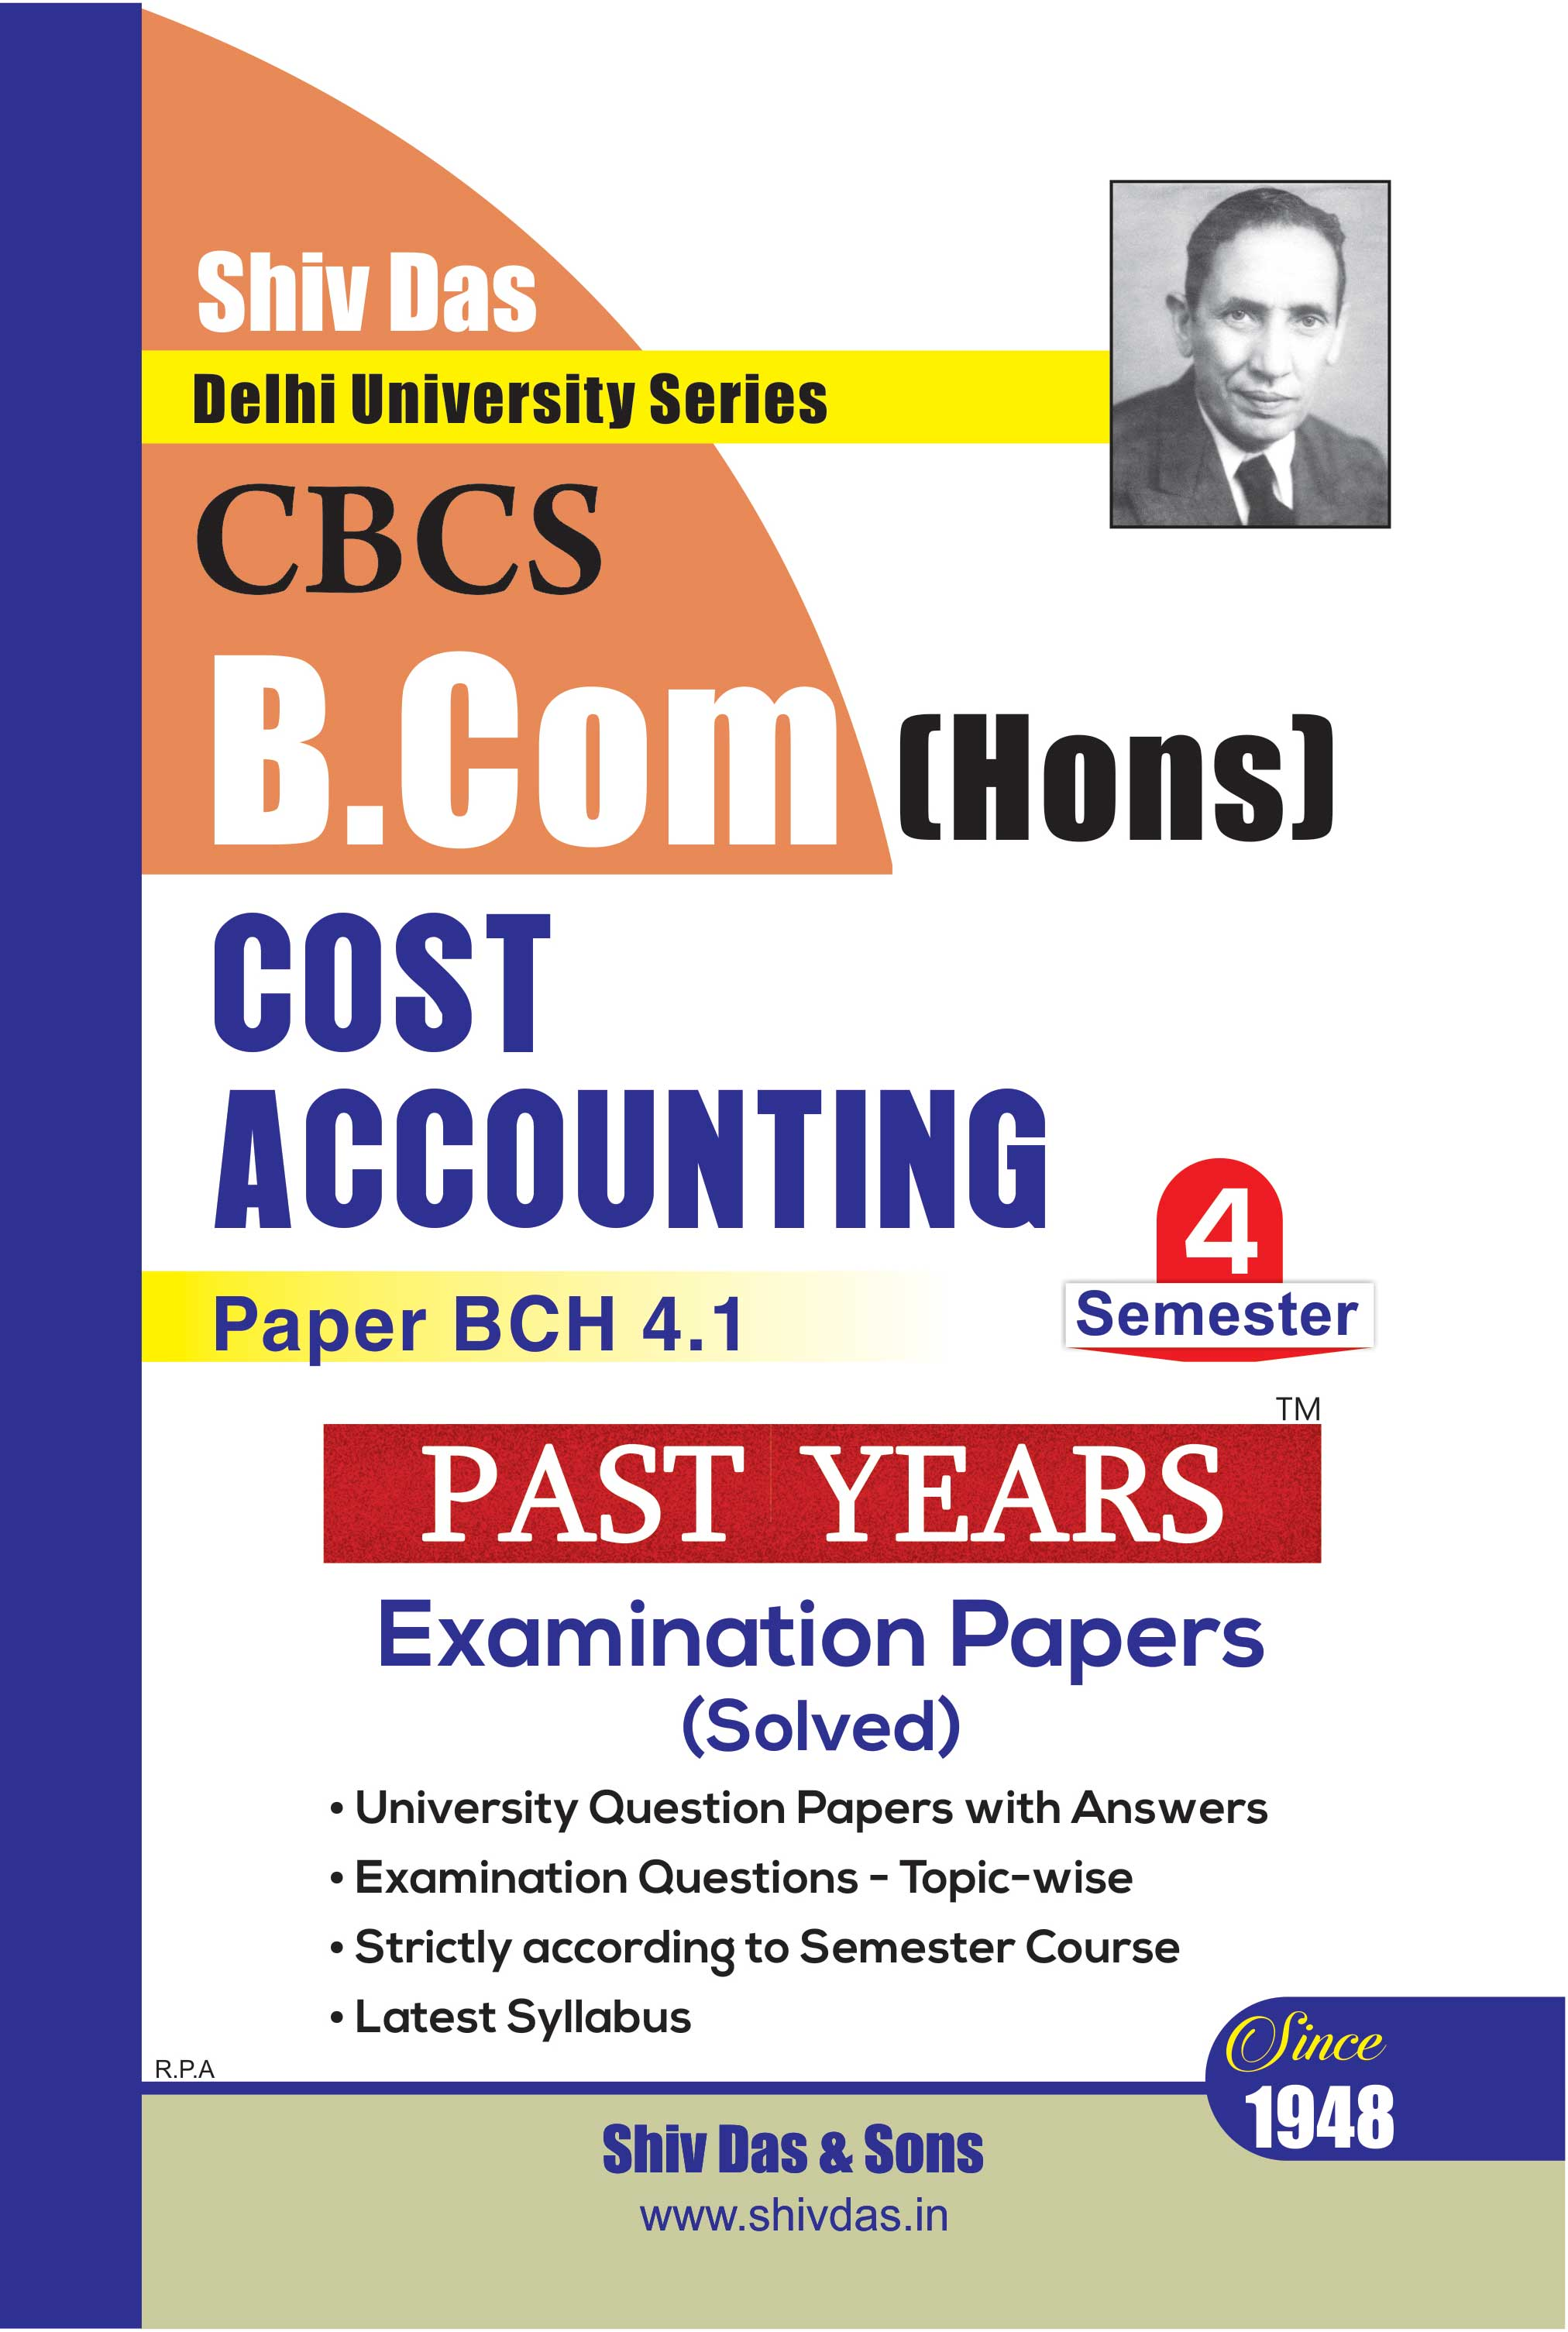 Cost Accounting for B.Com Hons Semester 4 for Delhi University by Shiv Das